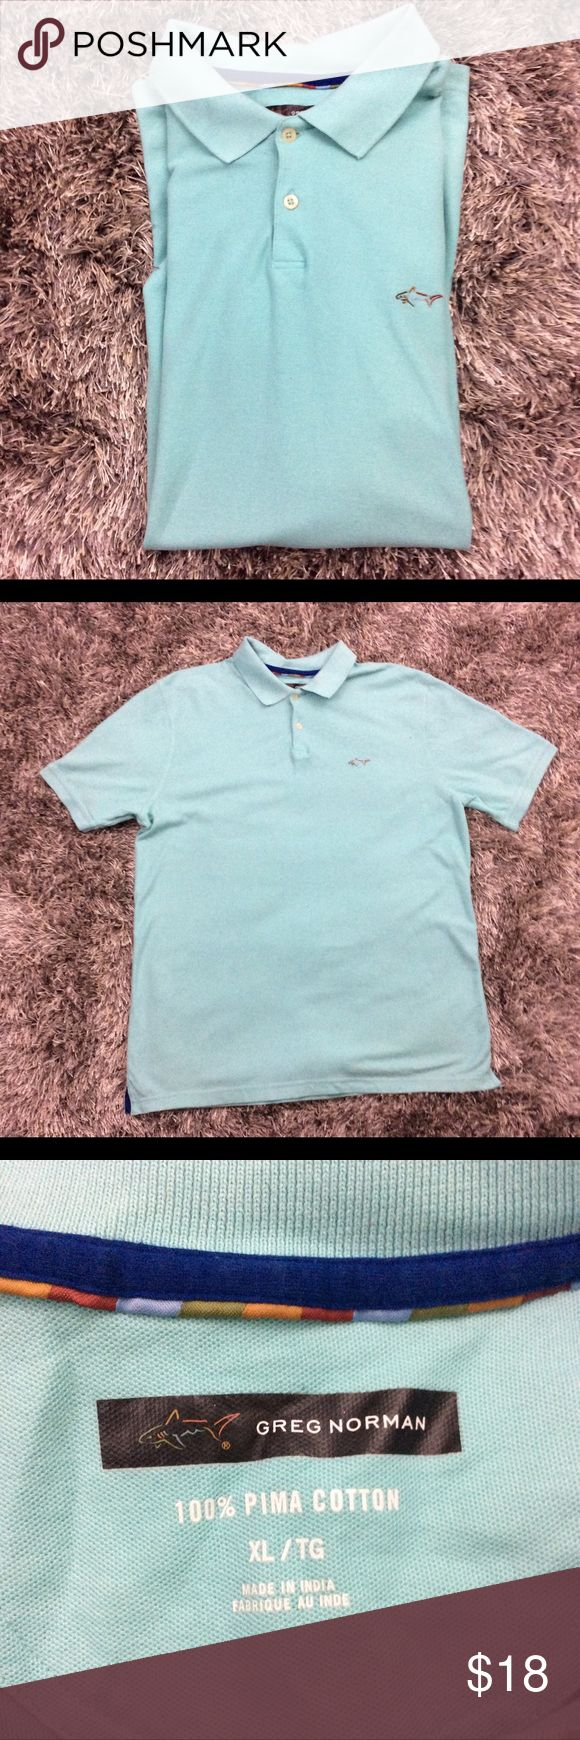 Greg Norman XL Shirt Greg Norman men's polo shirt. In pristine condition. No marks or stains. Comes from smoke free and pet free home. Greg Norman Shirts Polos